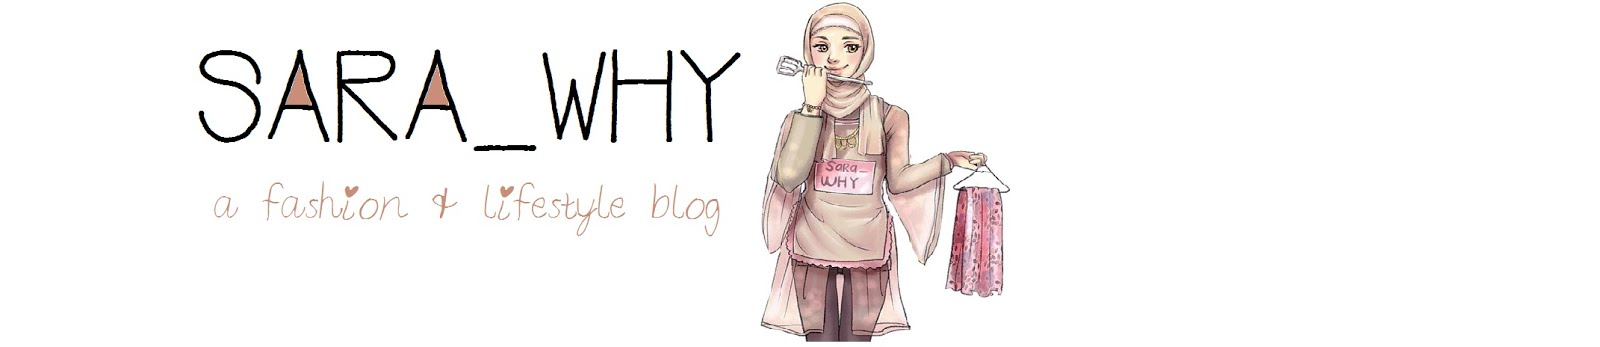 Sara Why - A Fashion & Lifestyle Blog